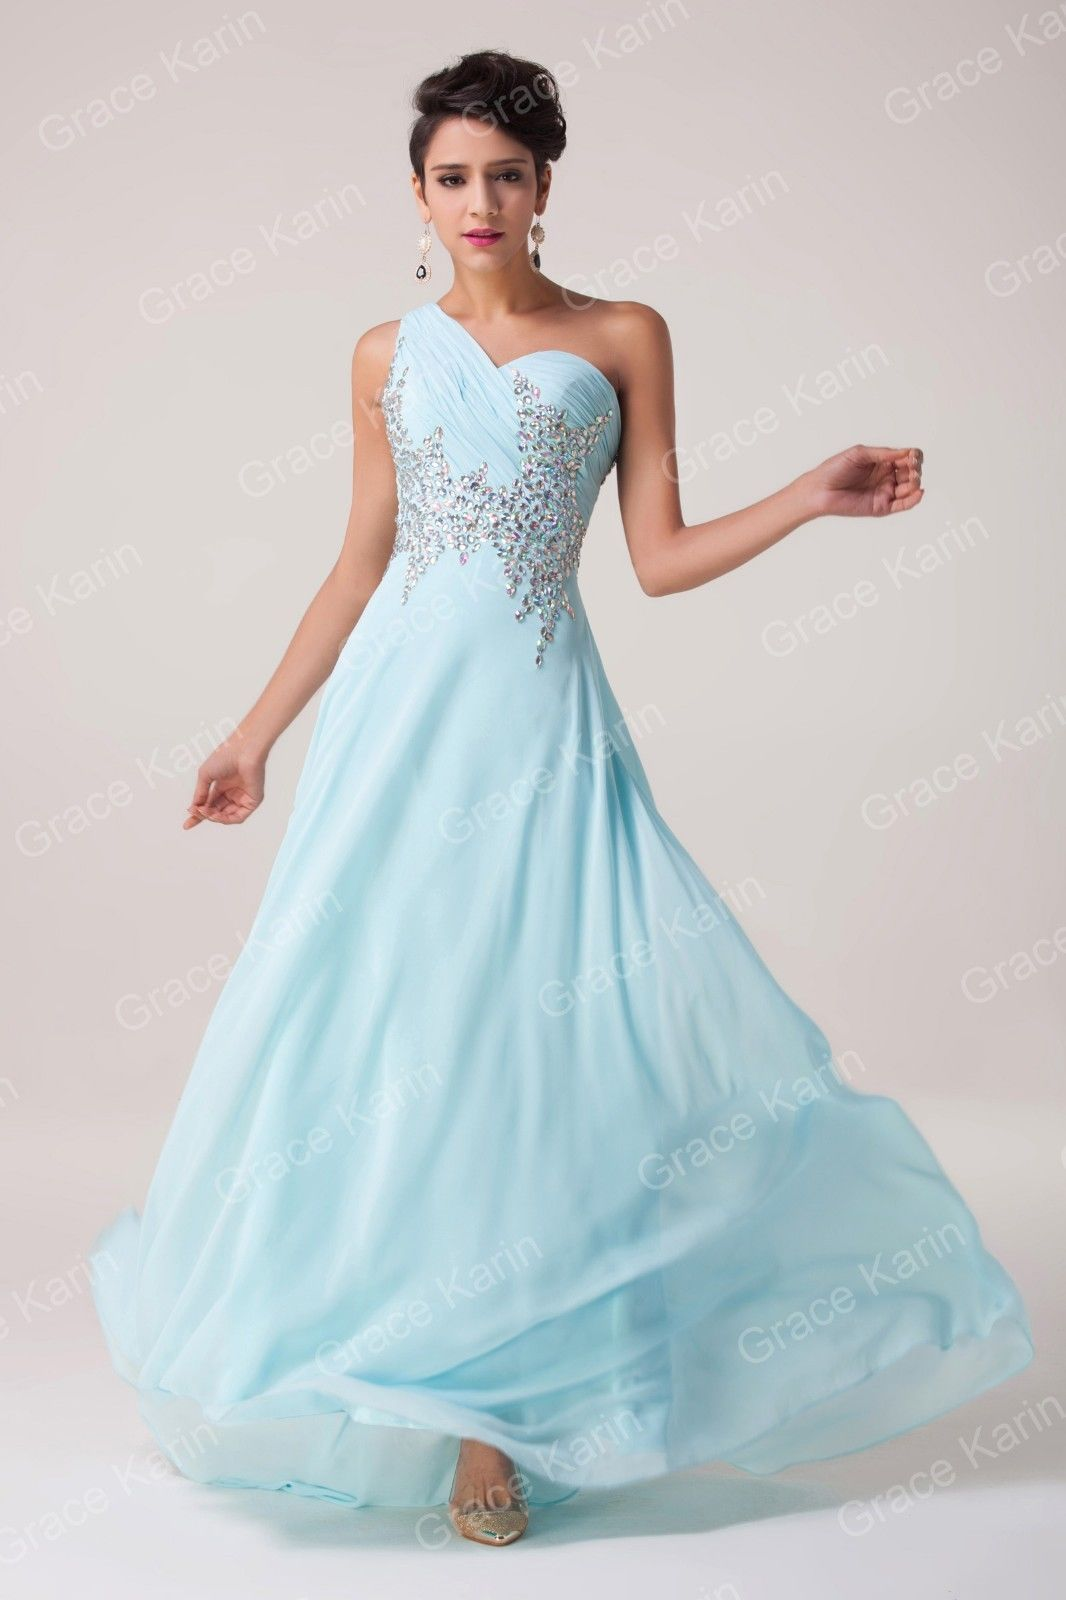 2015 Pop Long Beaded Formal Evening Party Gown Prom Bridesmaid ...